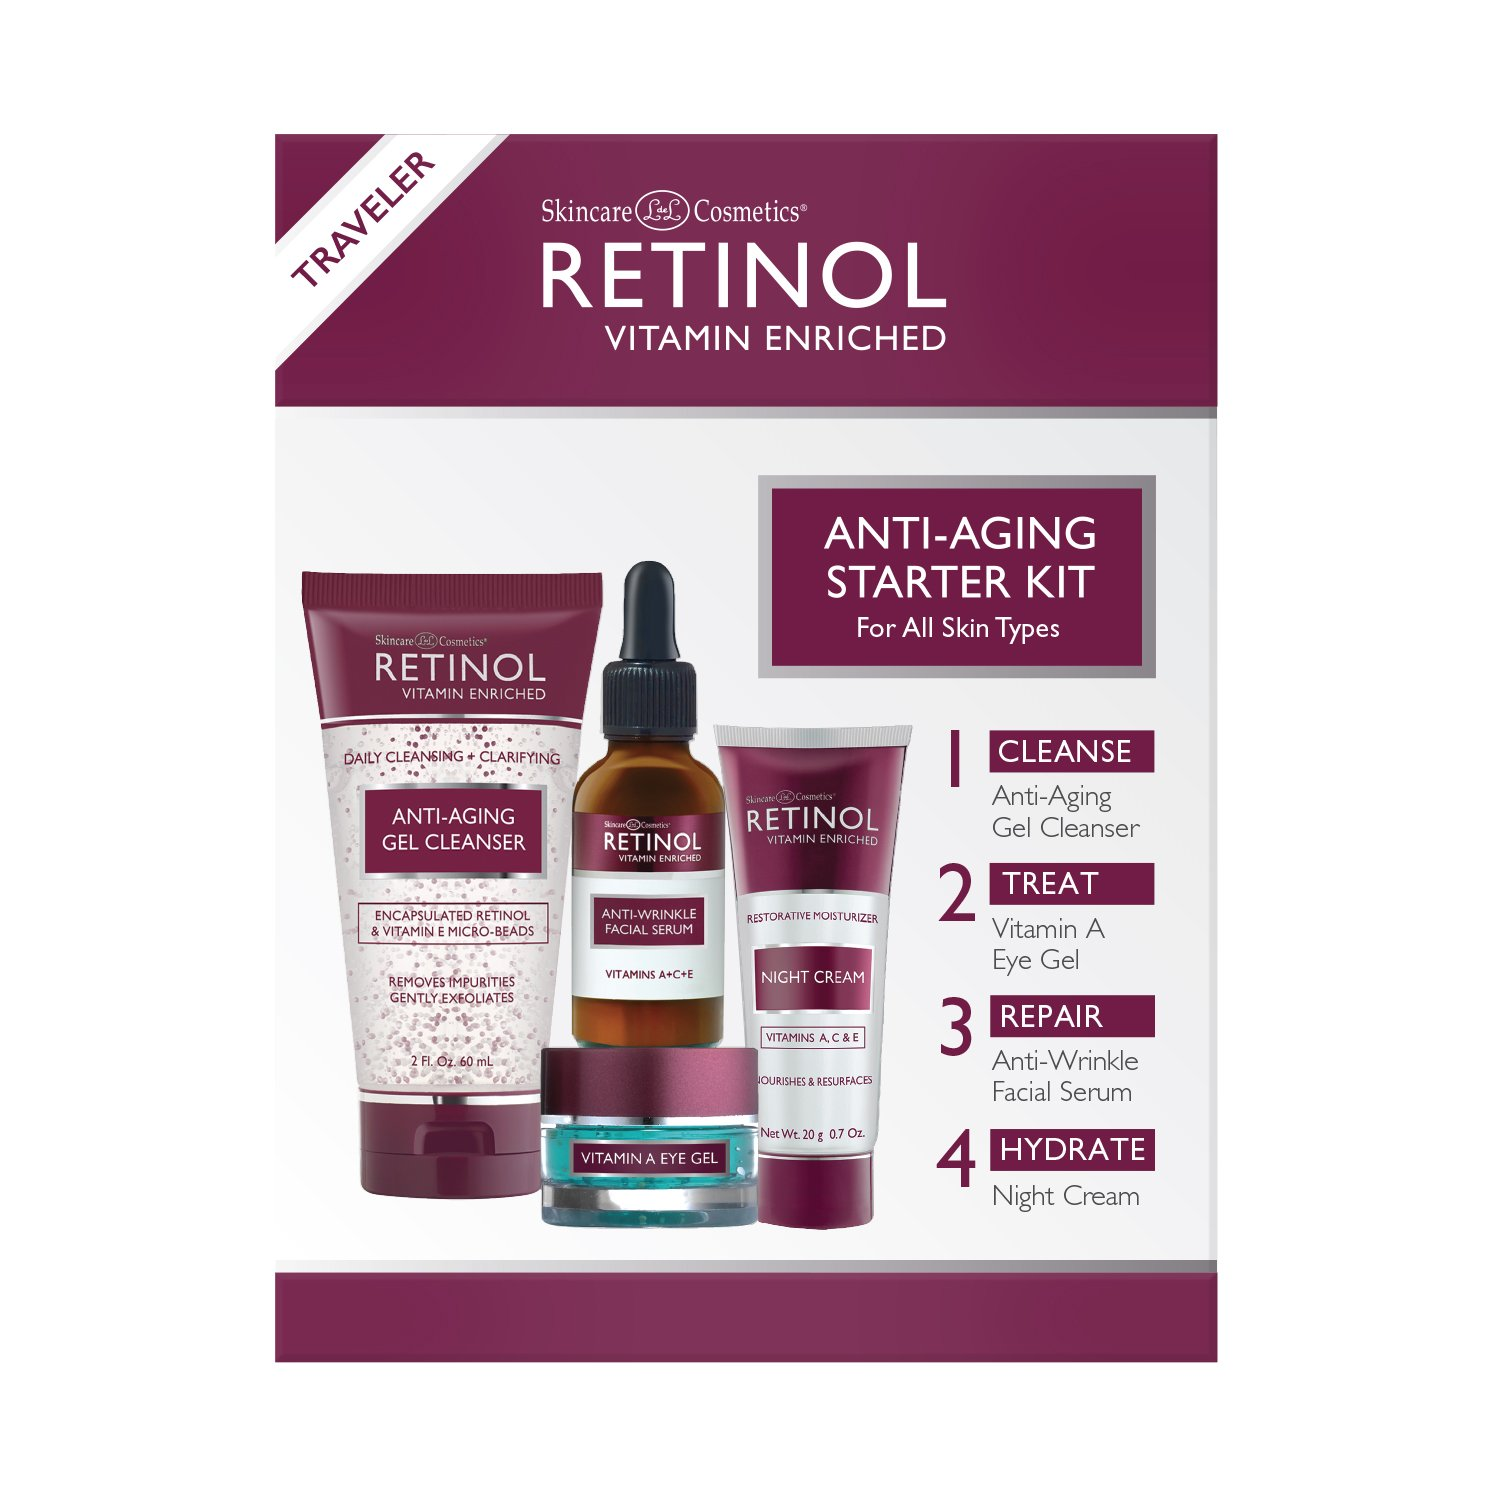 Retinol Anti-Aging Starter Kit - The Original Retinol For a Younger Look - [4] Conveniently Sized Products Perfect For Travel or First Time Try - Cleanse, Treat, Repair & Hydrate On-The-Go